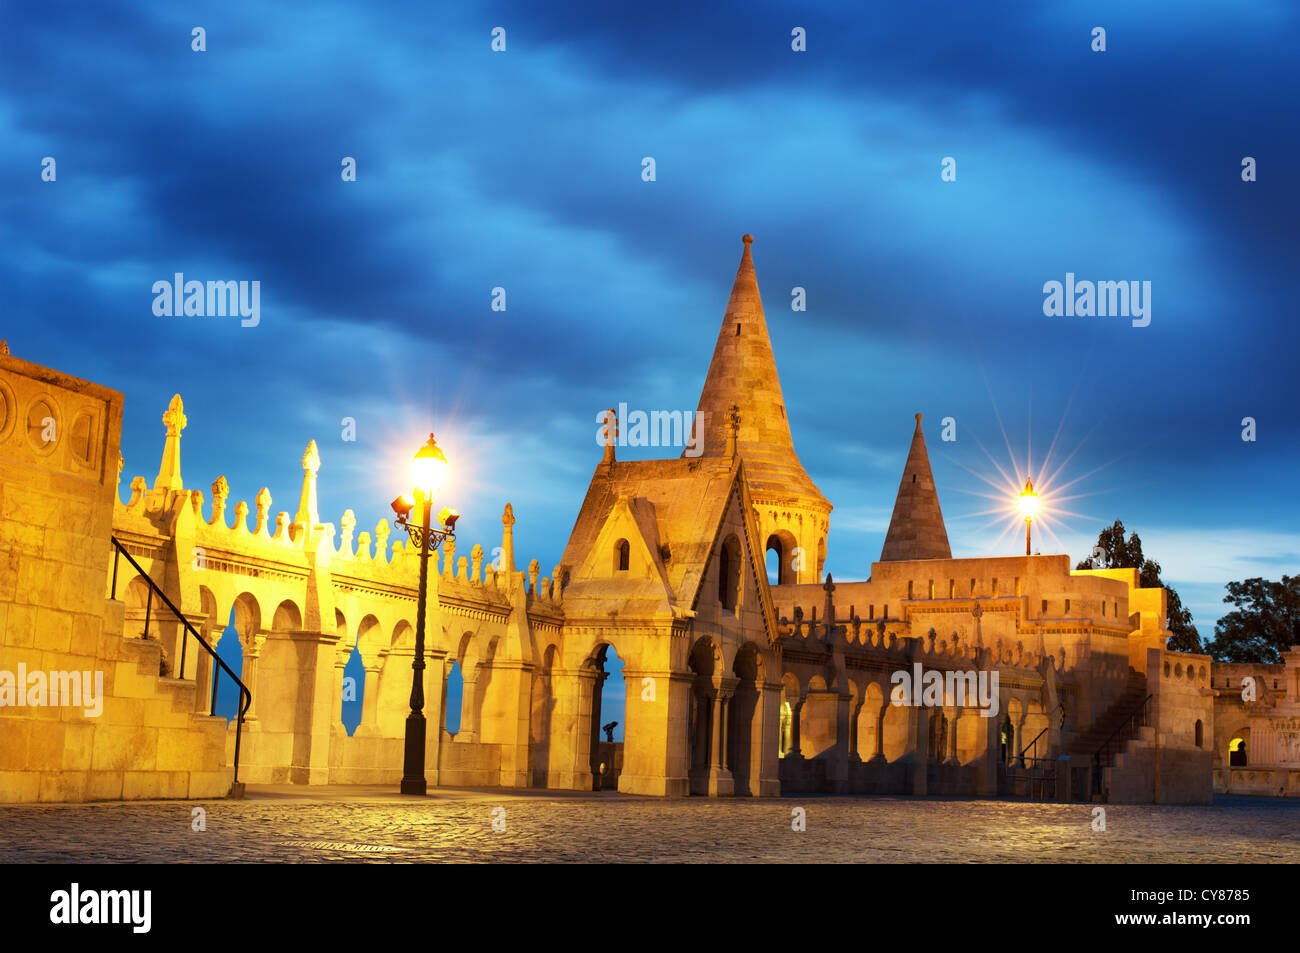 Fisherman's Bastion at night in Budapest Hungary - Stock Image